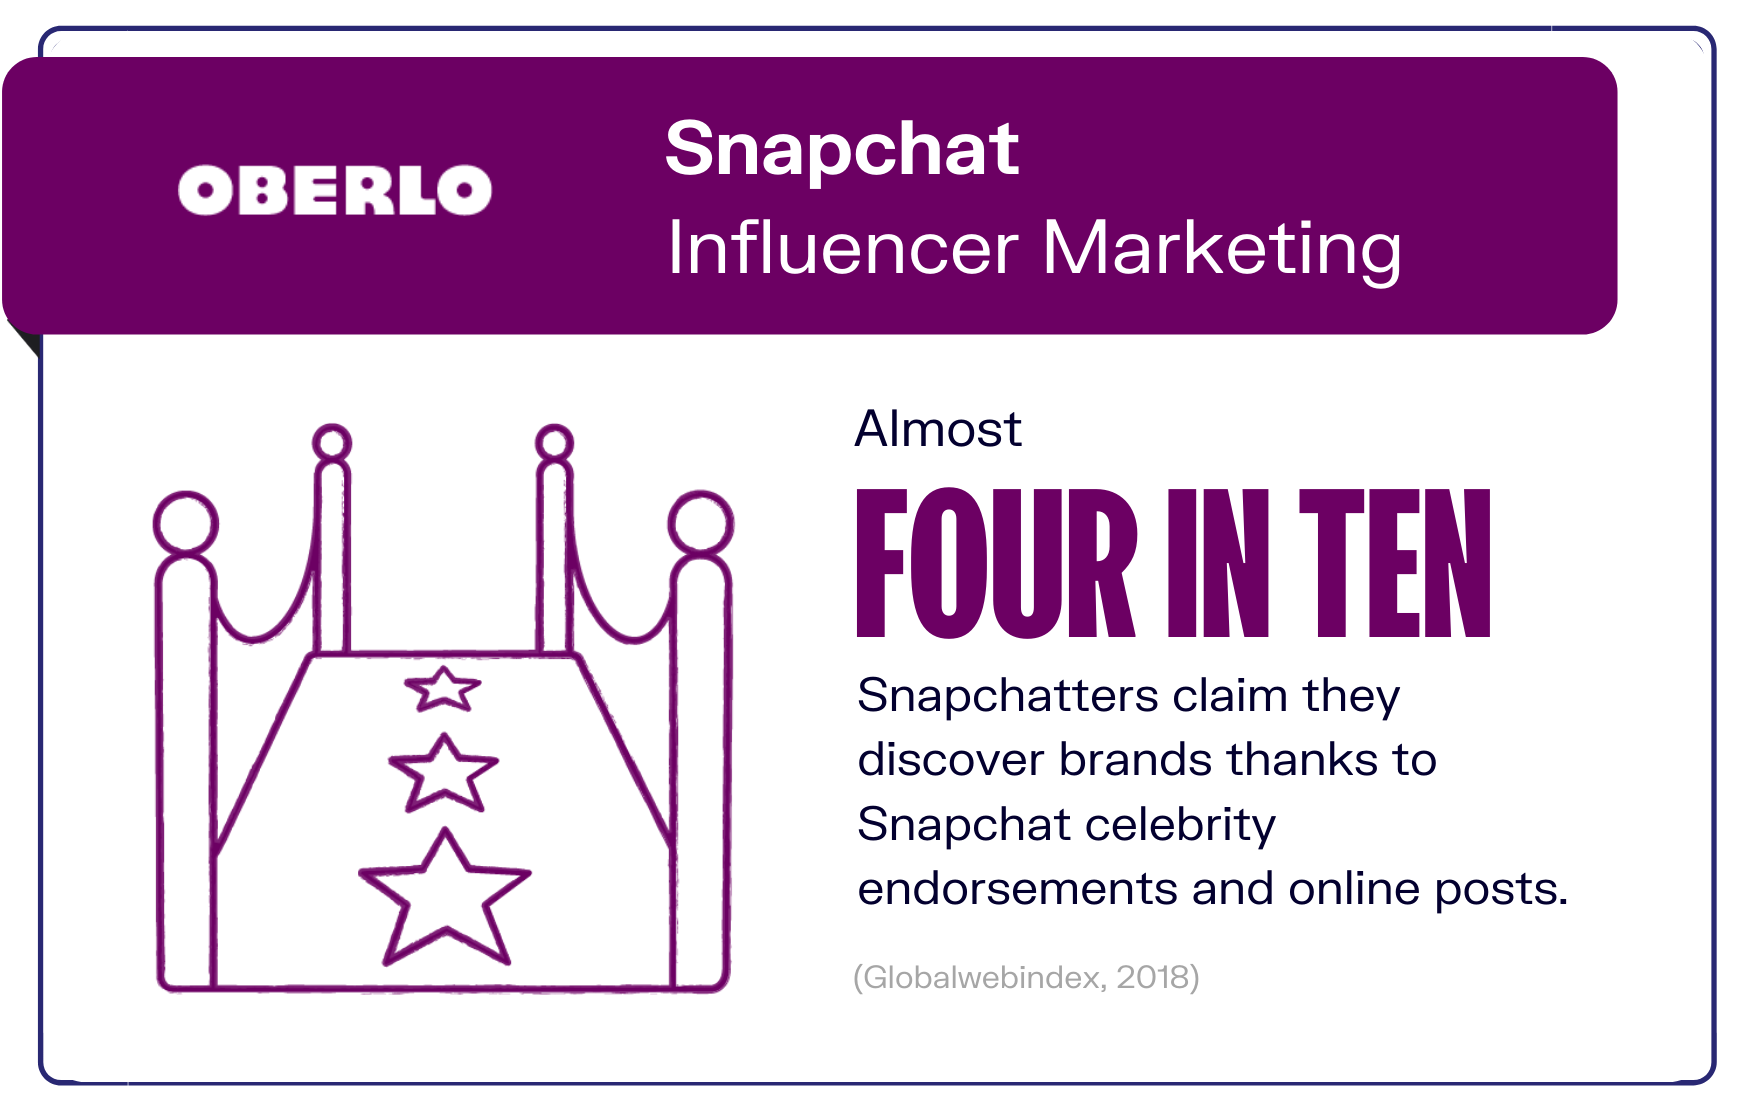 Snapchat Influencer Marketing graphic